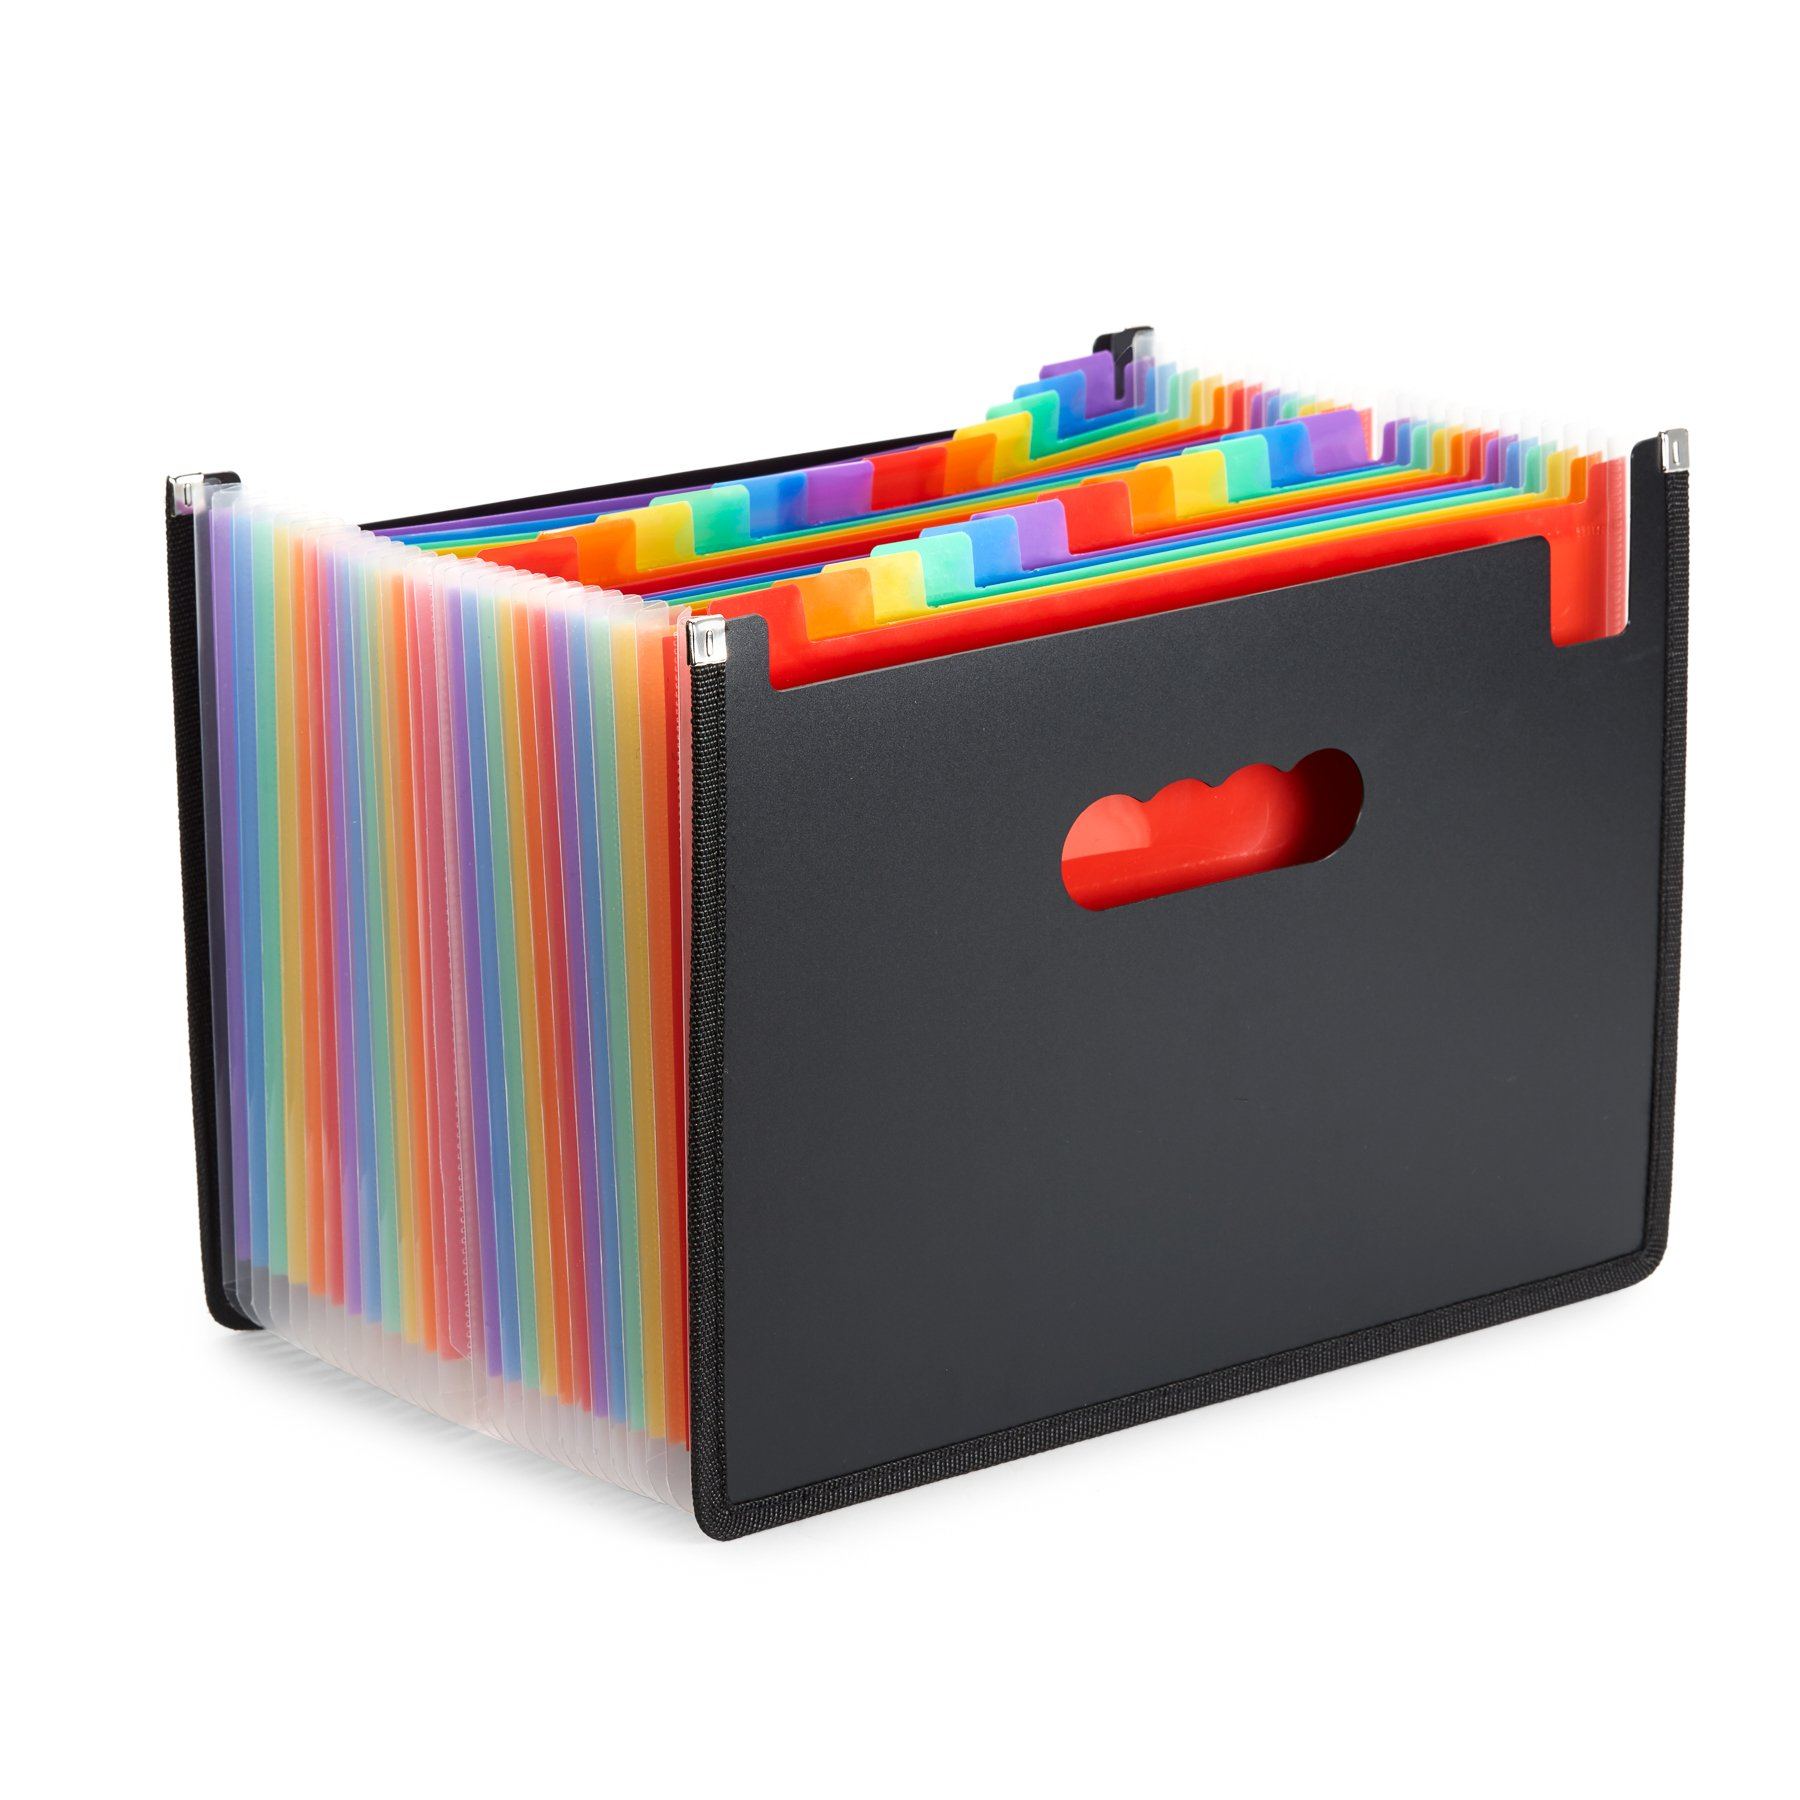 Blue Summit Supplies Accordion File Folder, 24 Pocket Expanding Organizer, A4 Letter Size Document Holder, Rainbow Multicolor